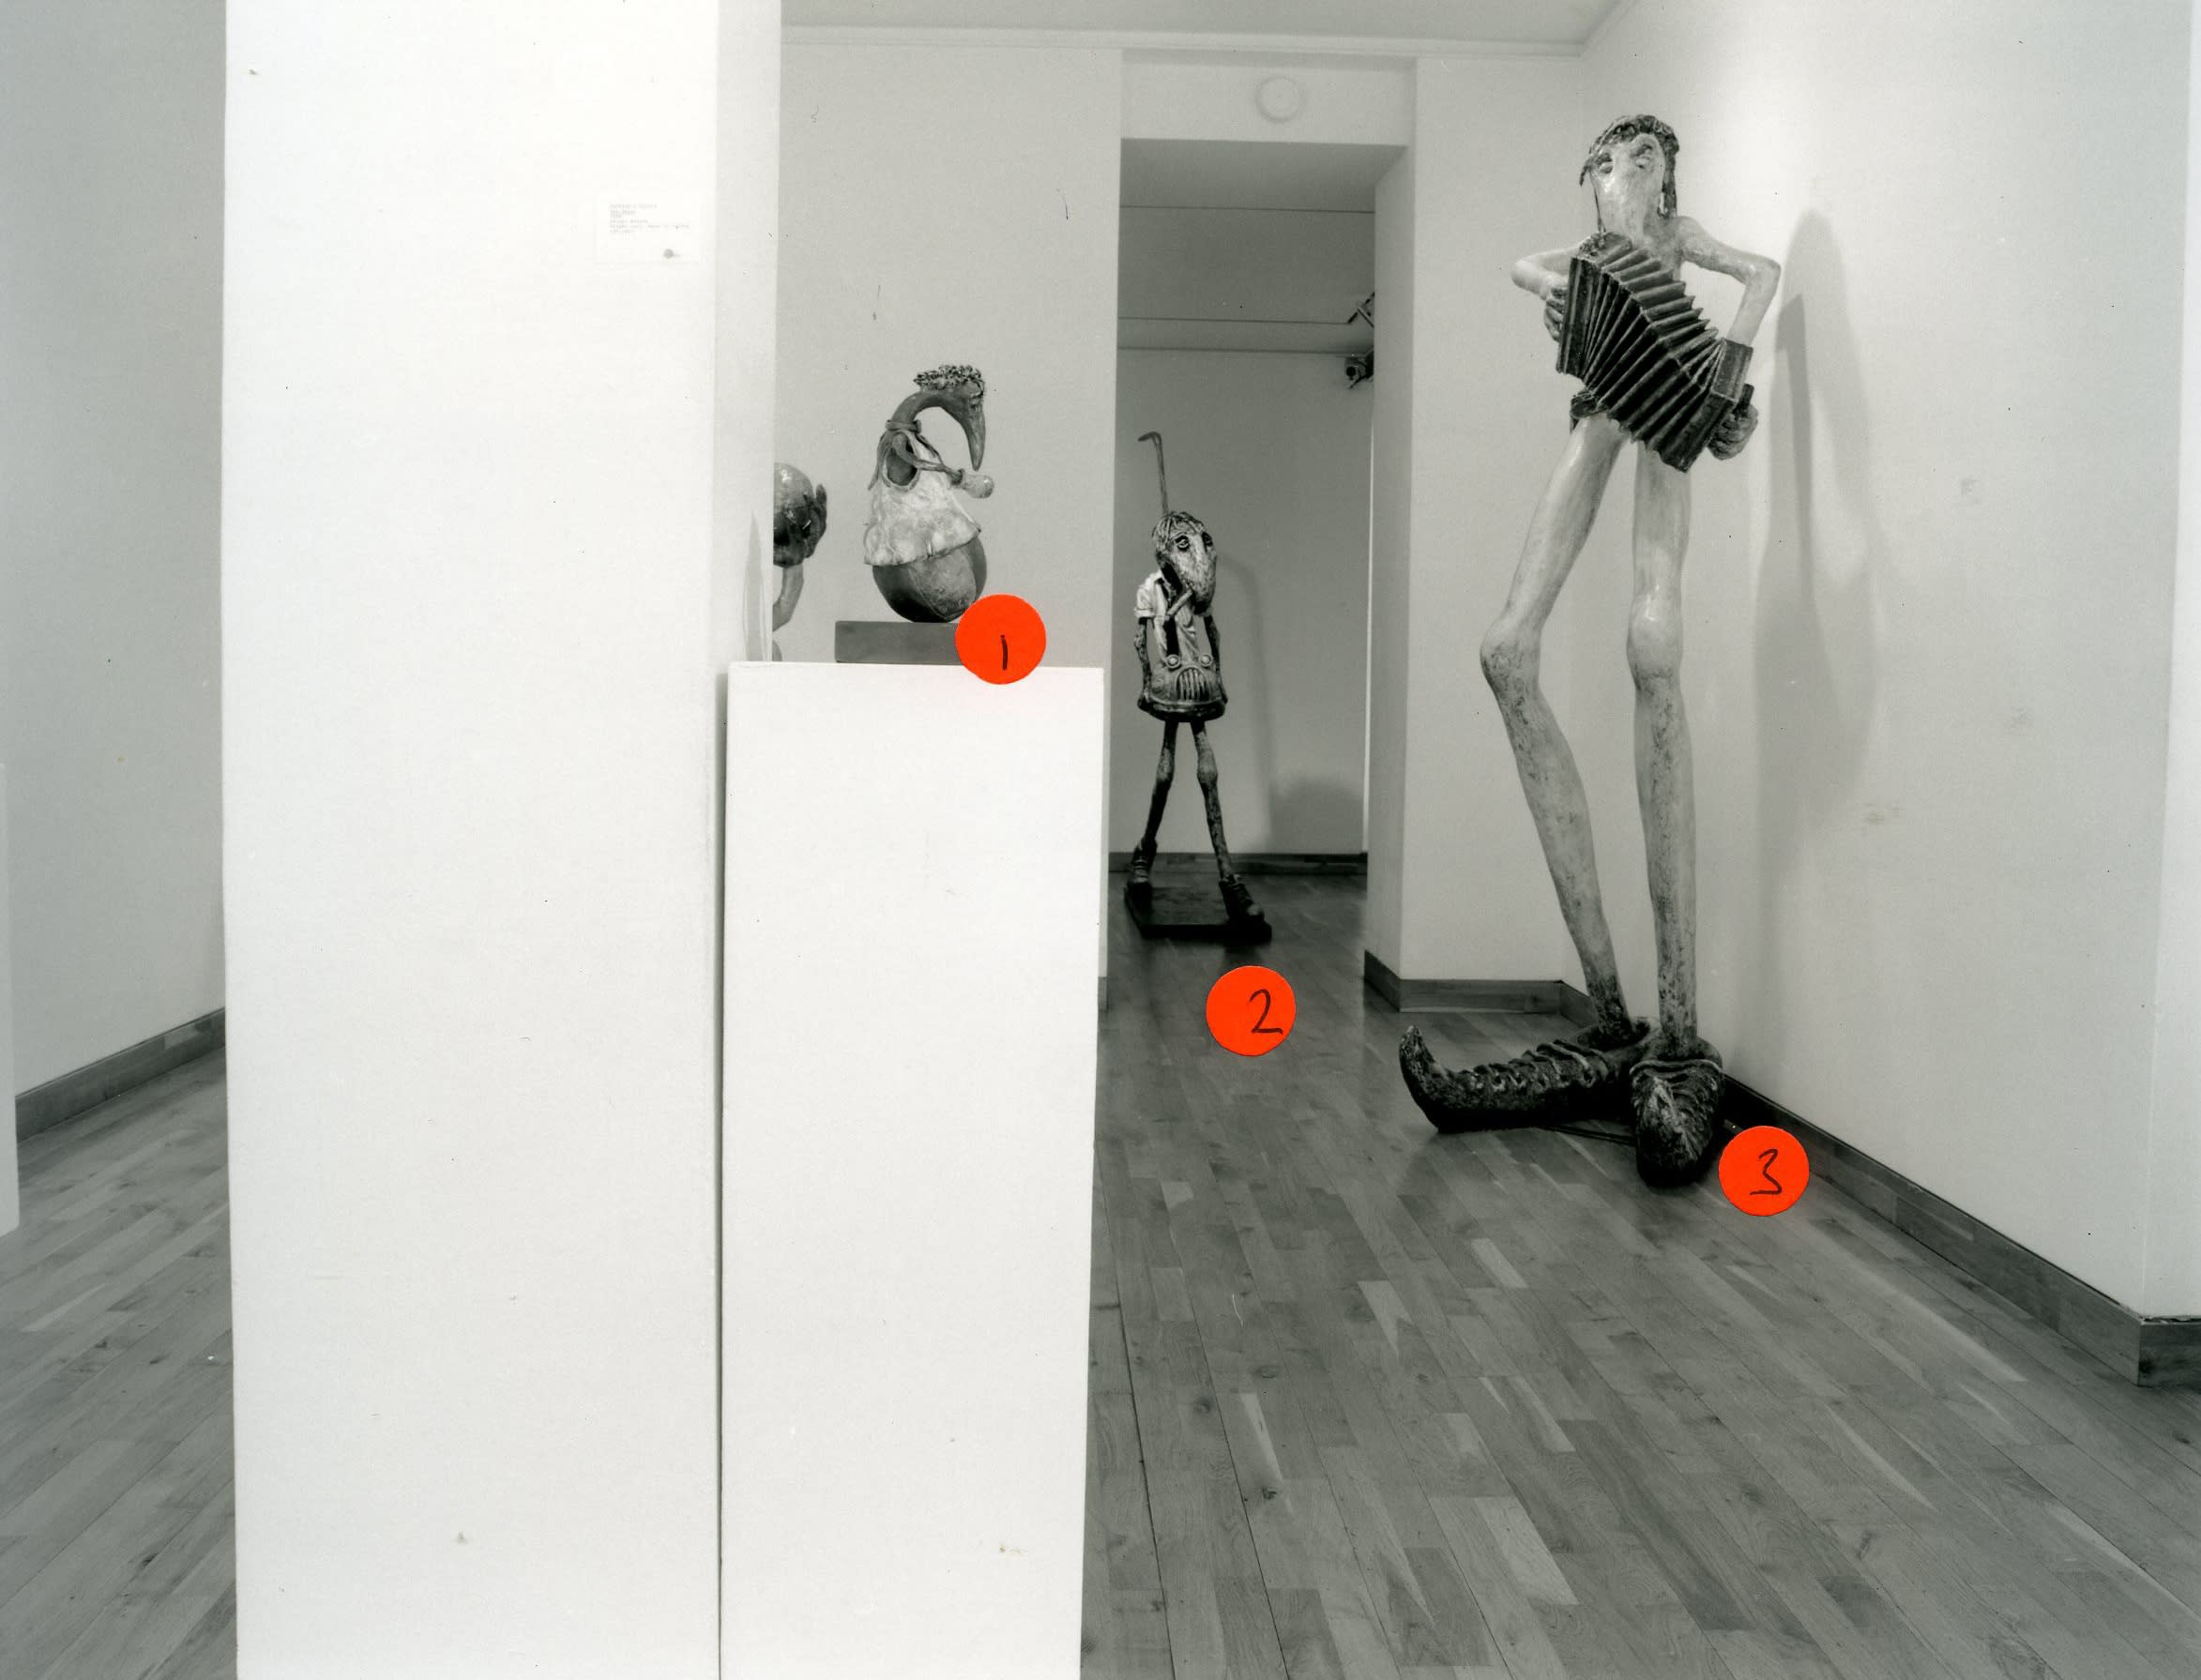 """<span class=""""link fancybox-details-link""""><a href=""""/exhibitions/162/works/image_standalone710/"""">View Detail Page</a></span><p>PATRICK O'REILLY   THE BROKEN WING   25 FEB - 01 APR 1999   Installation View</p>"""